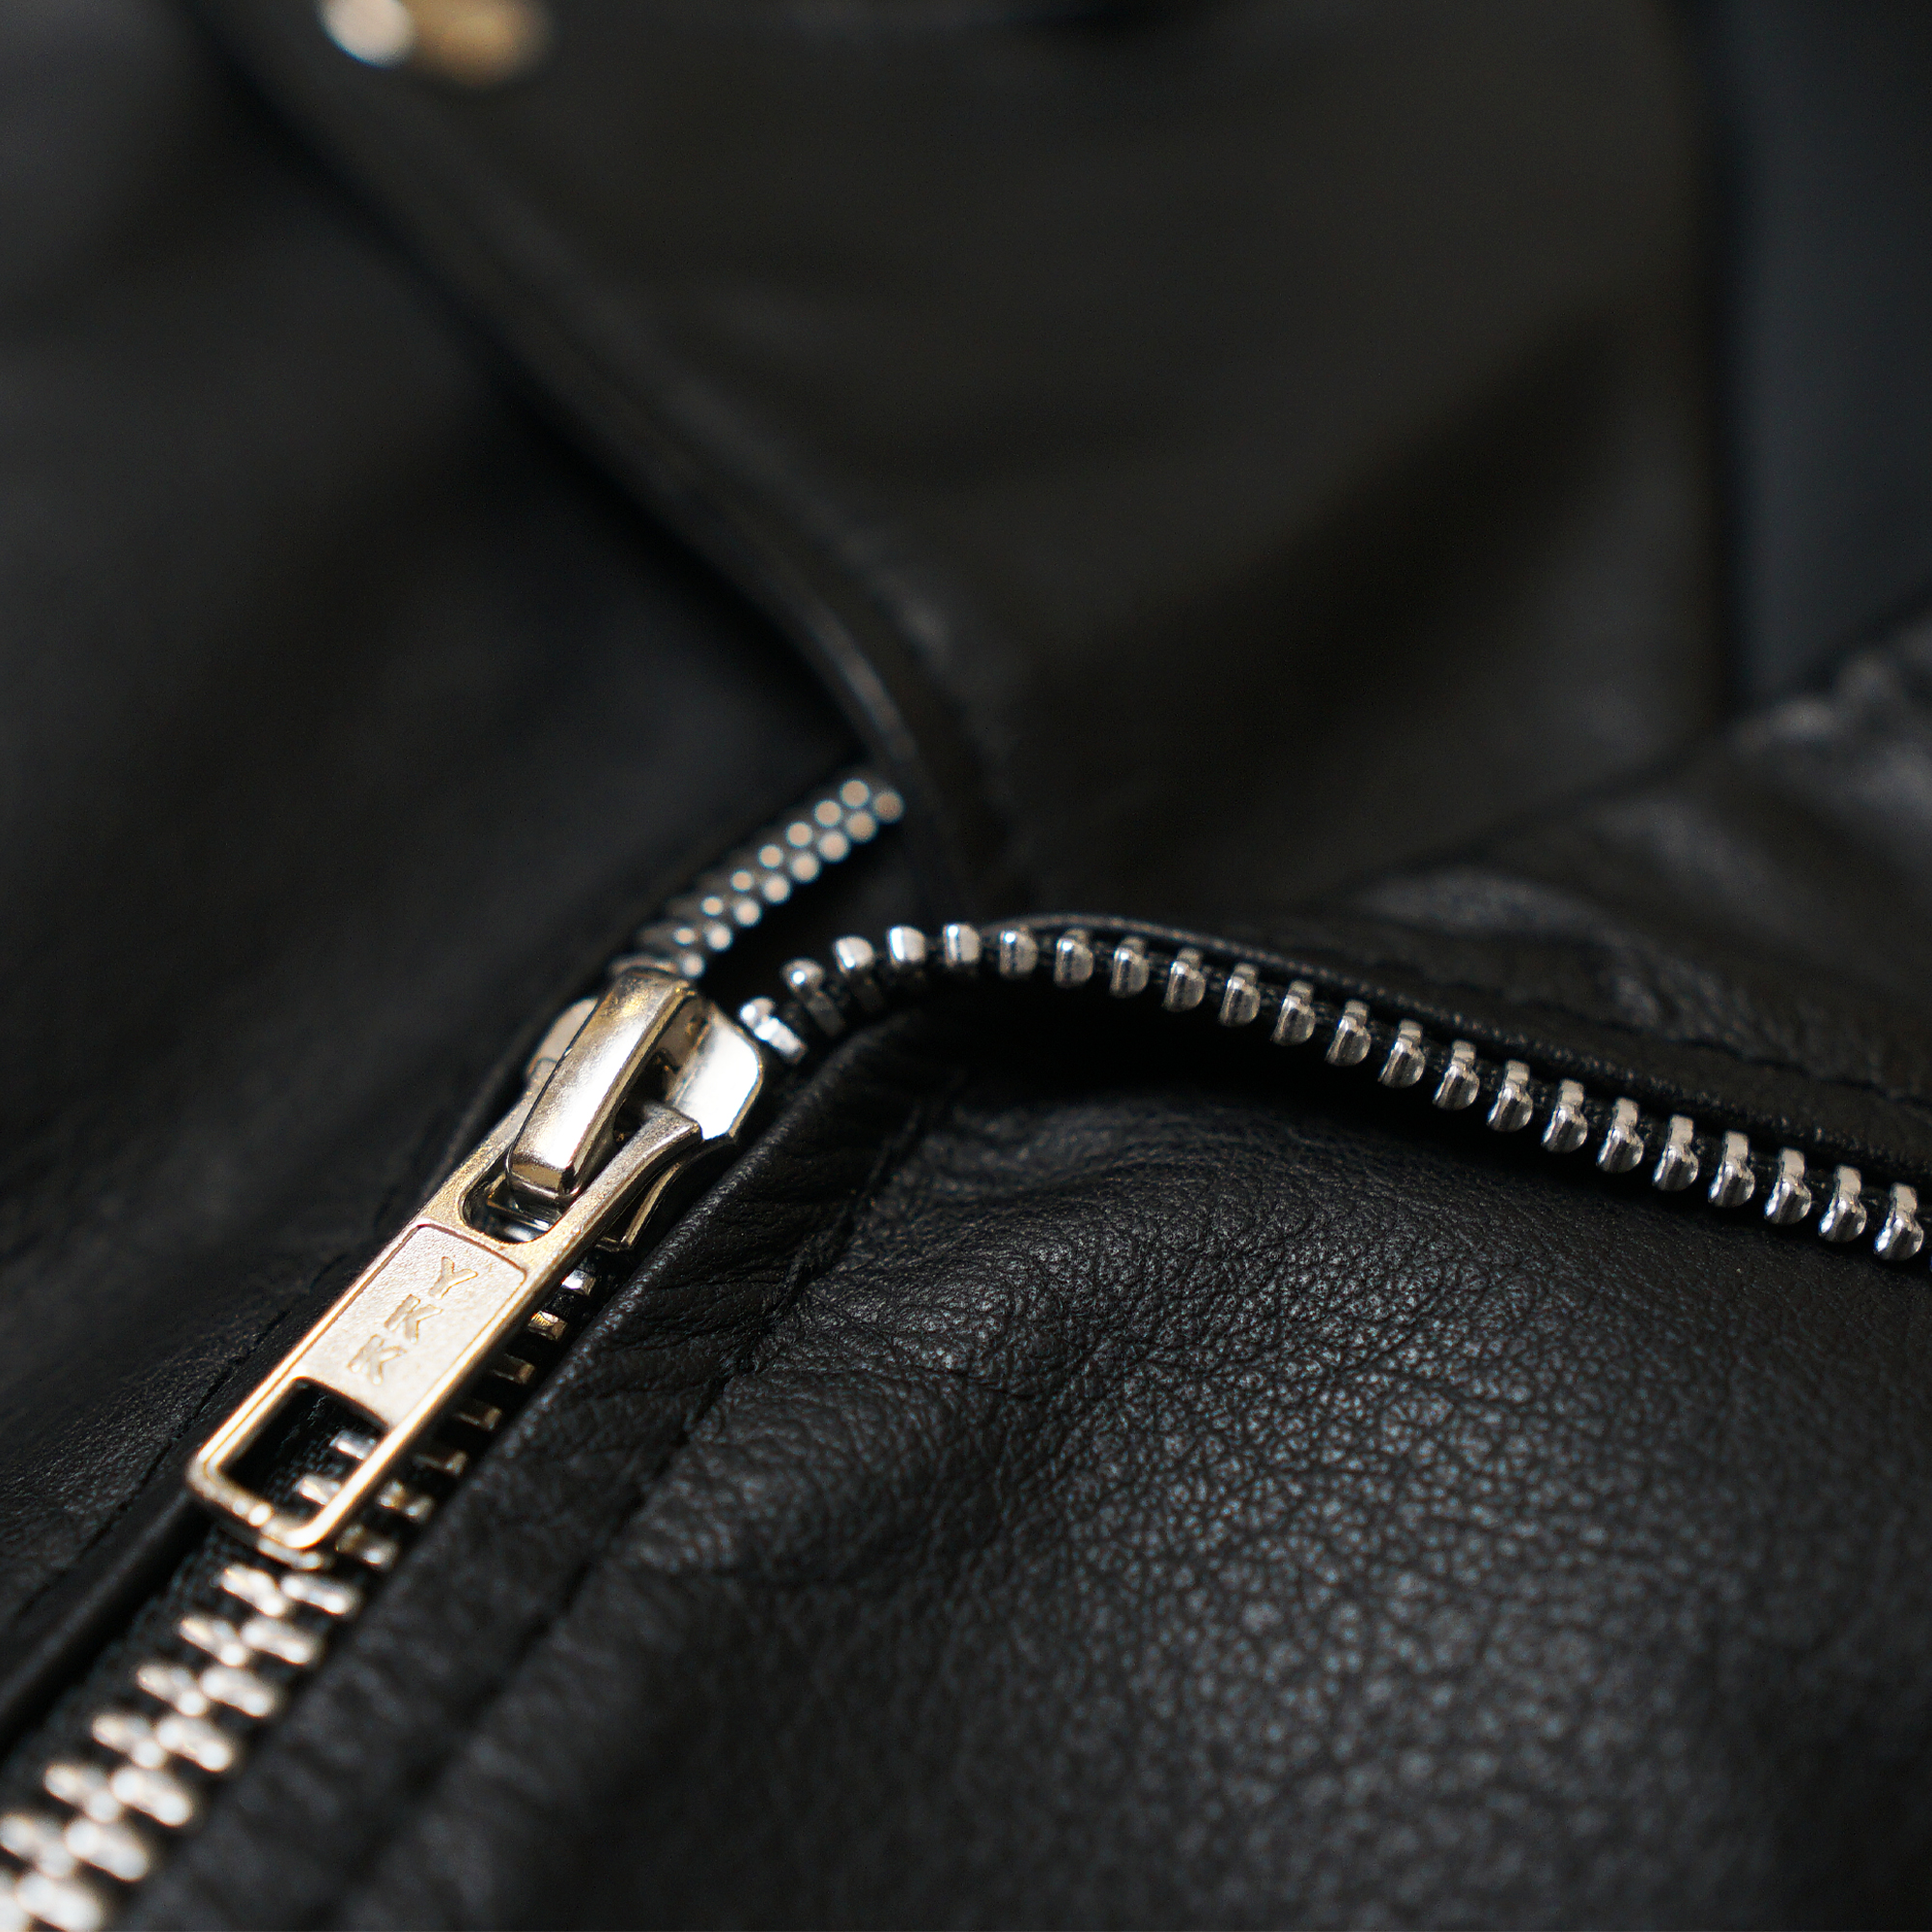 lawless_leather_jacket_detail_5